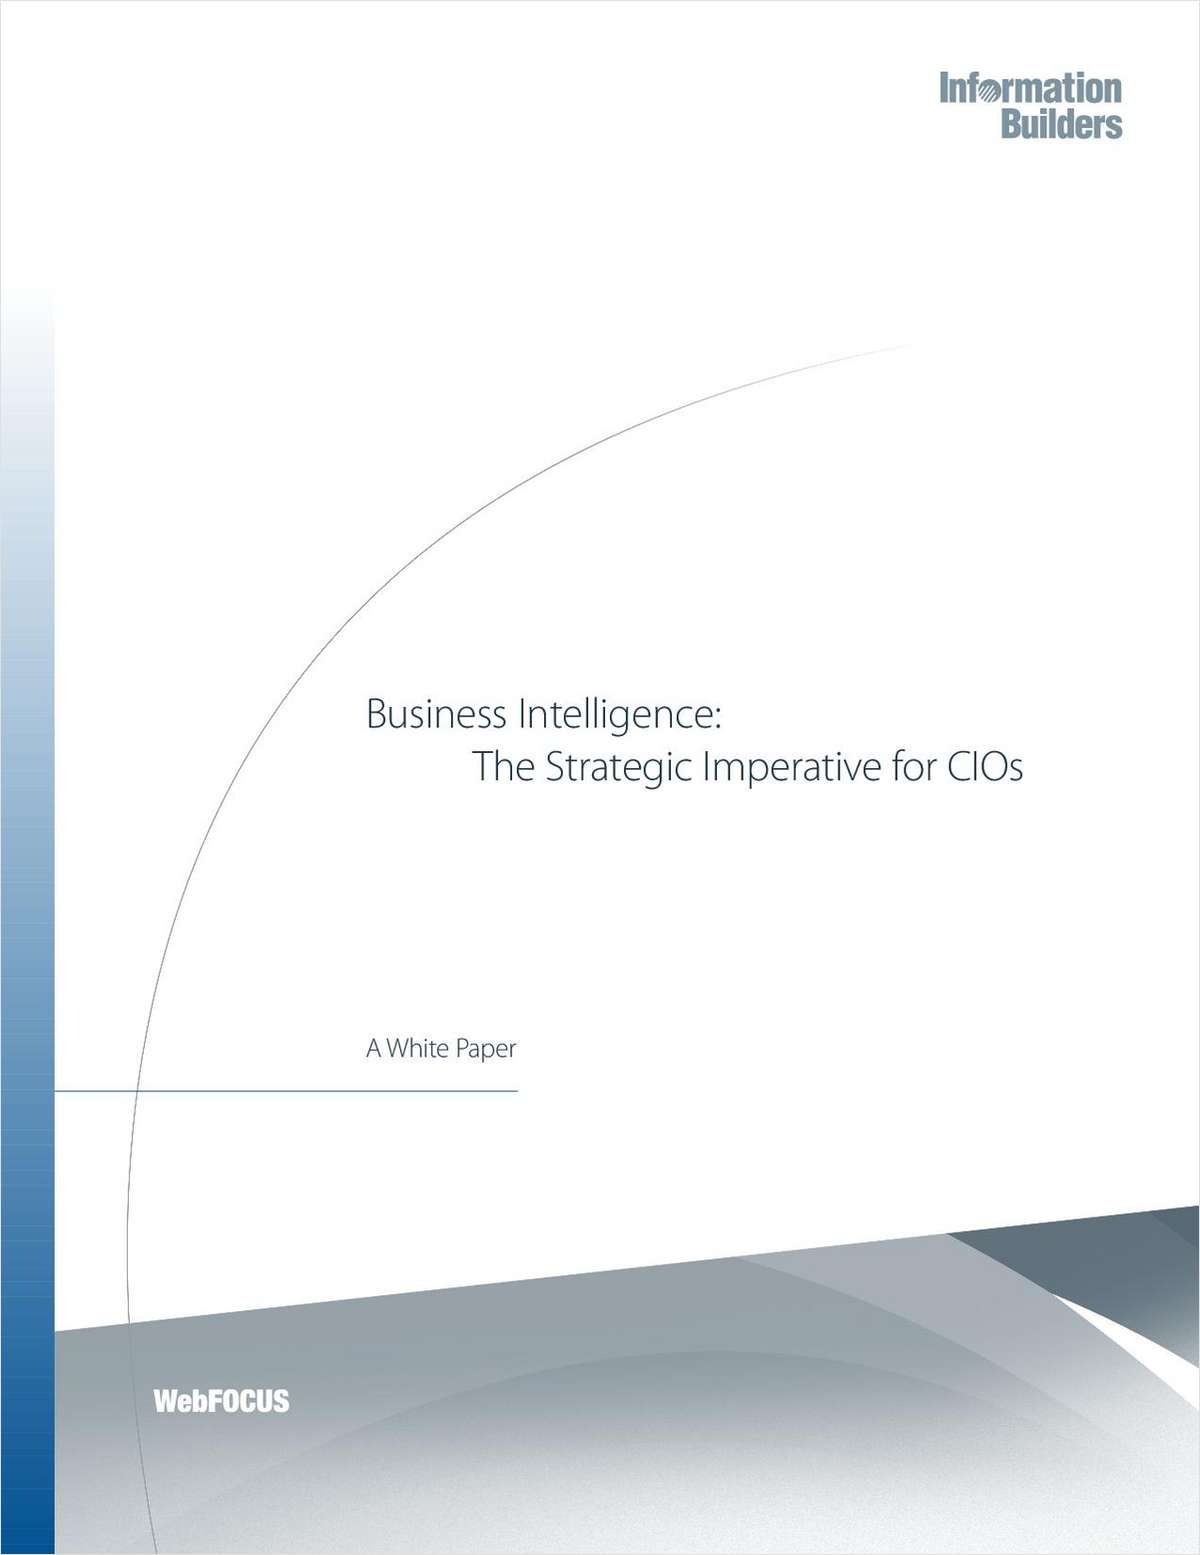 Business Intelligence: The Strategic Imperative for CIOs